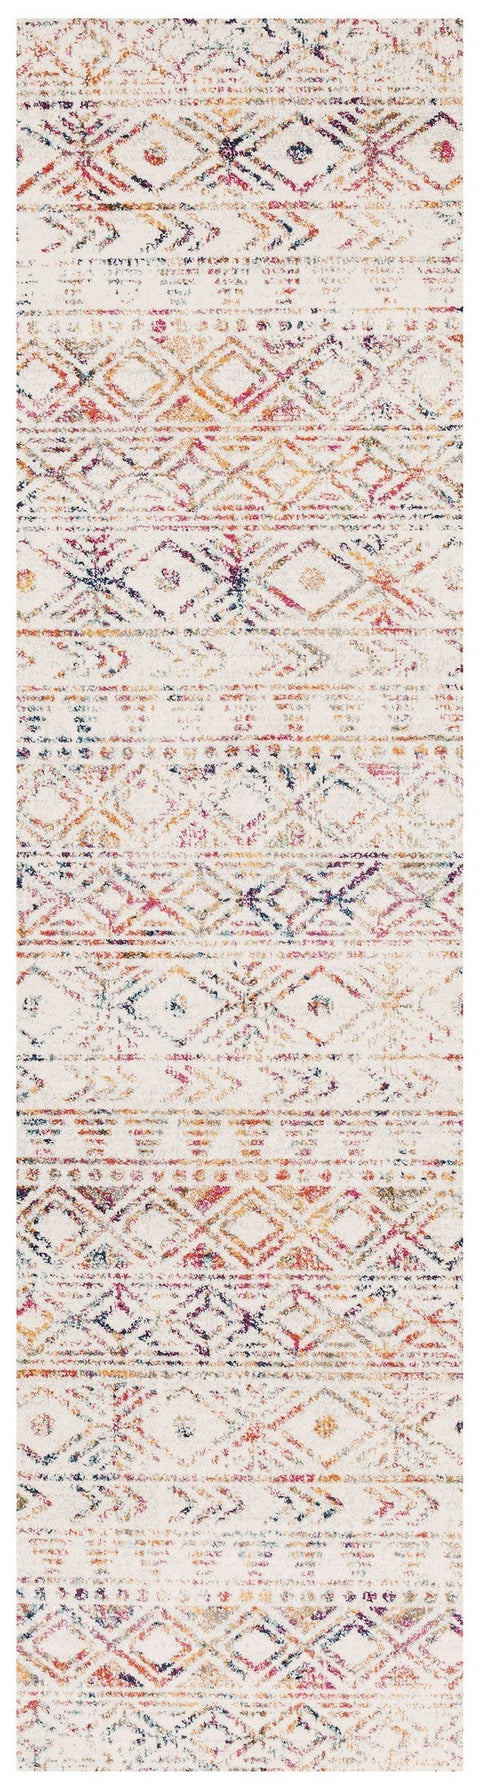 Topanga Ivory & Multicolour Tribal Pattern Runner Rug